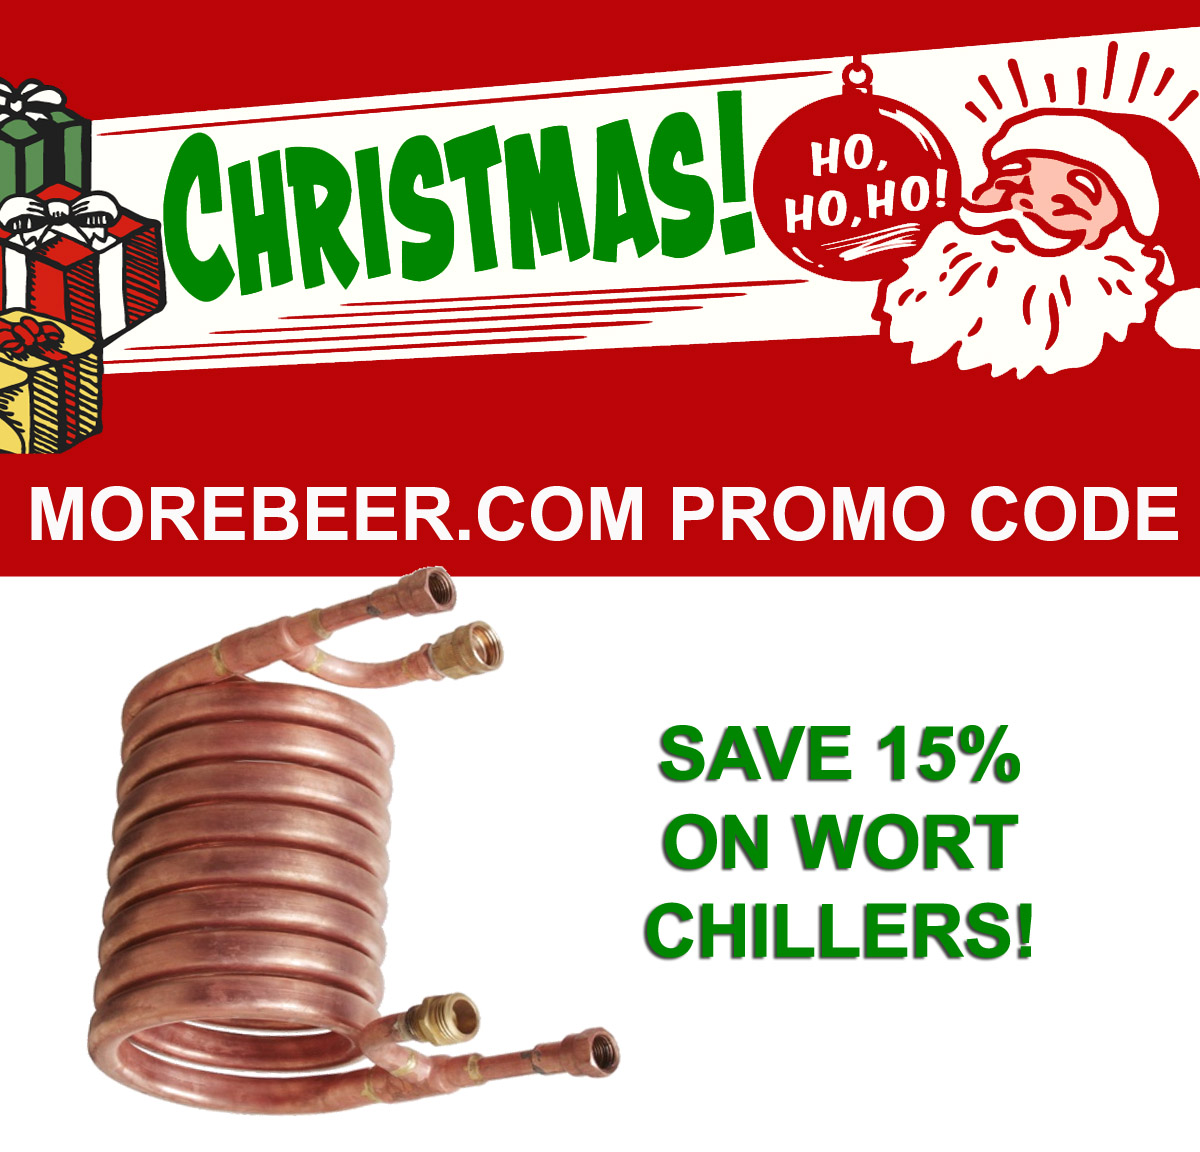 Save 15% On Wort Chillers Today Only At MoreBeer! Coupon Code